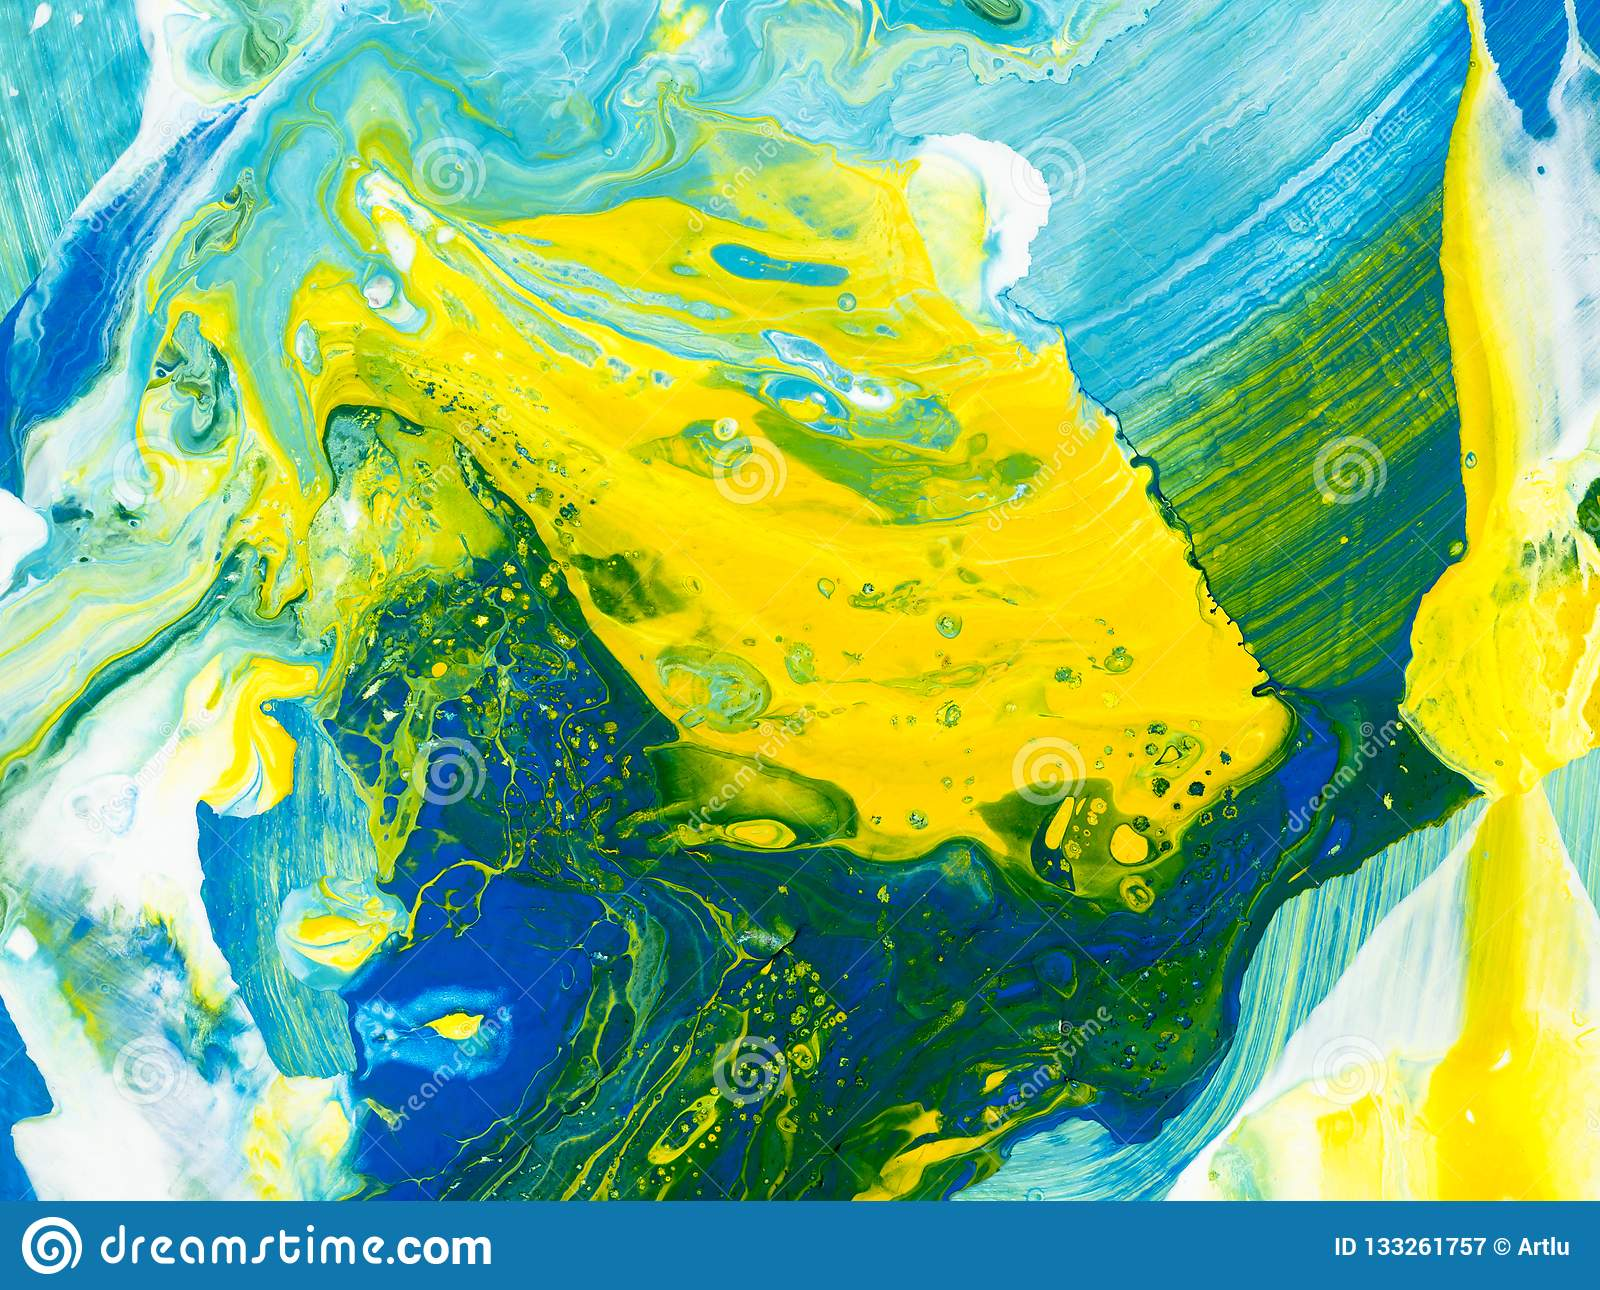 Blue Green And Yellow Creative Abstract Hand Painted